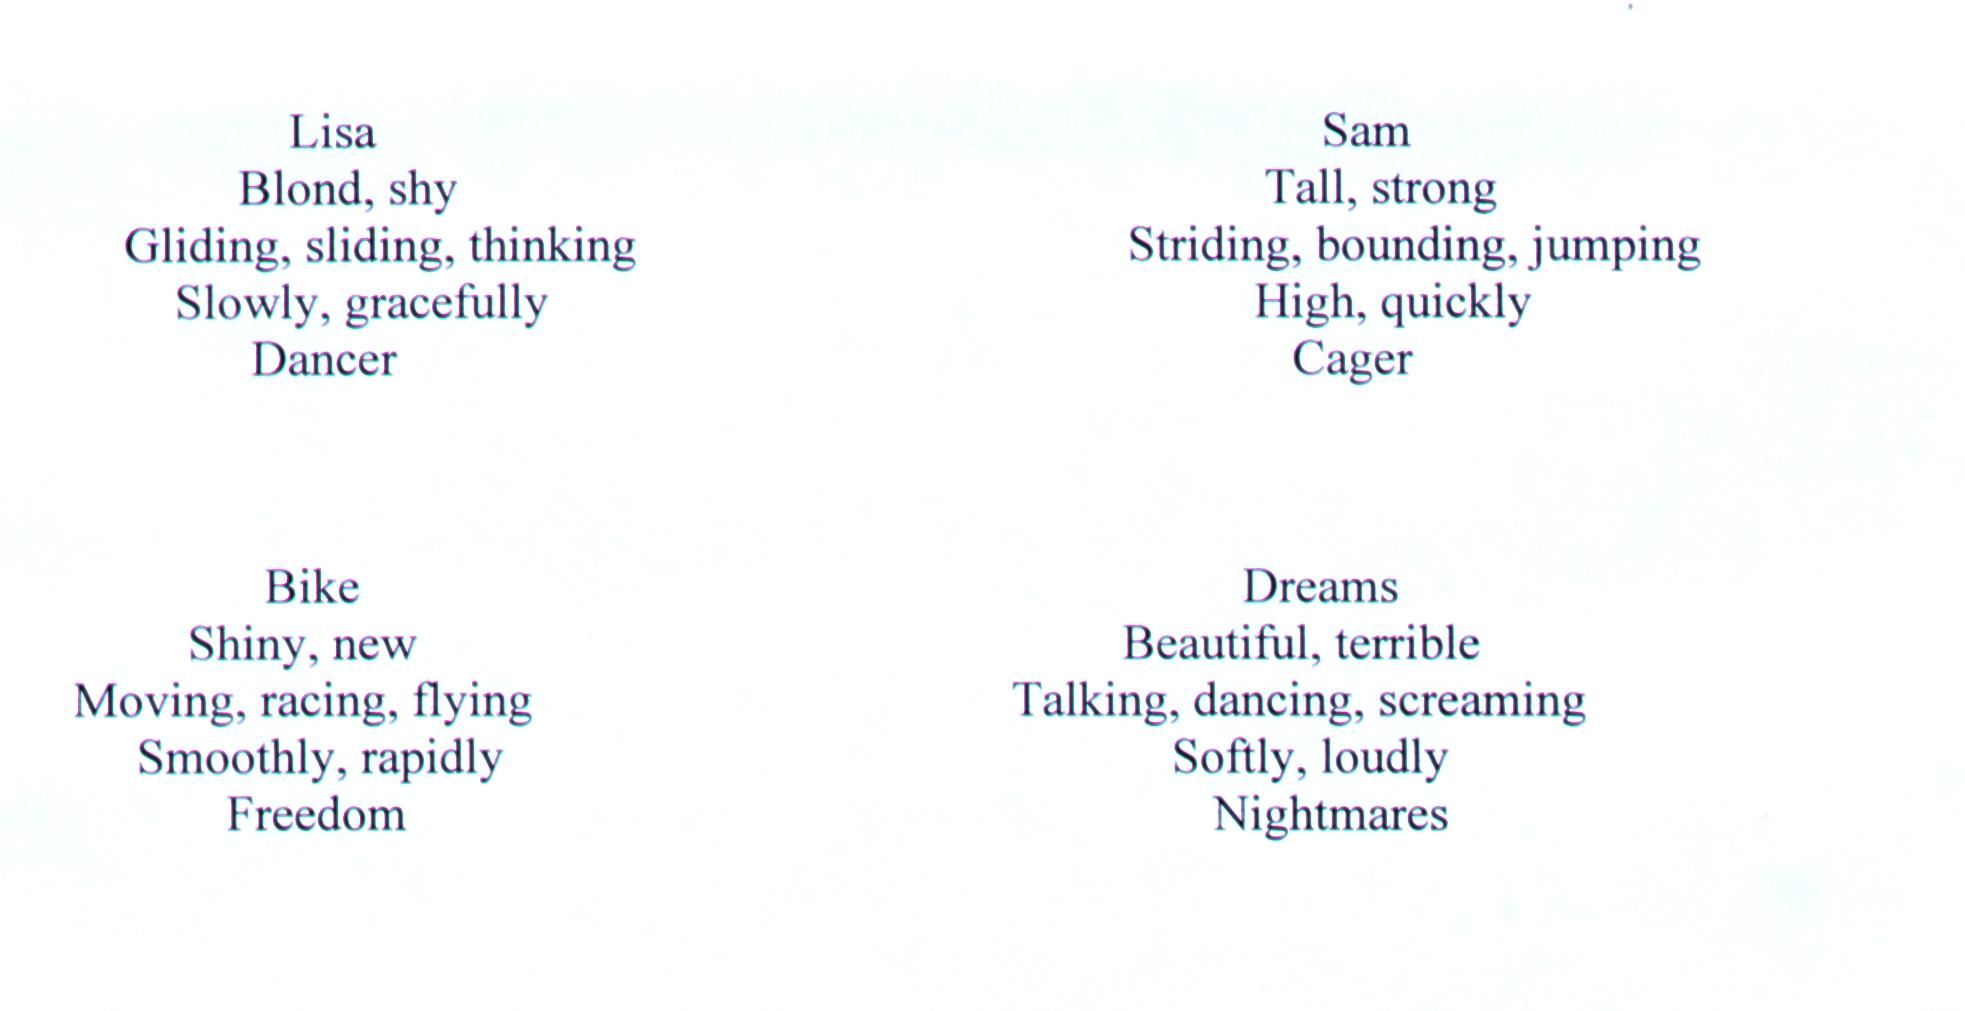 Examples of cinquain poems about basketball spirinnova42's soup.